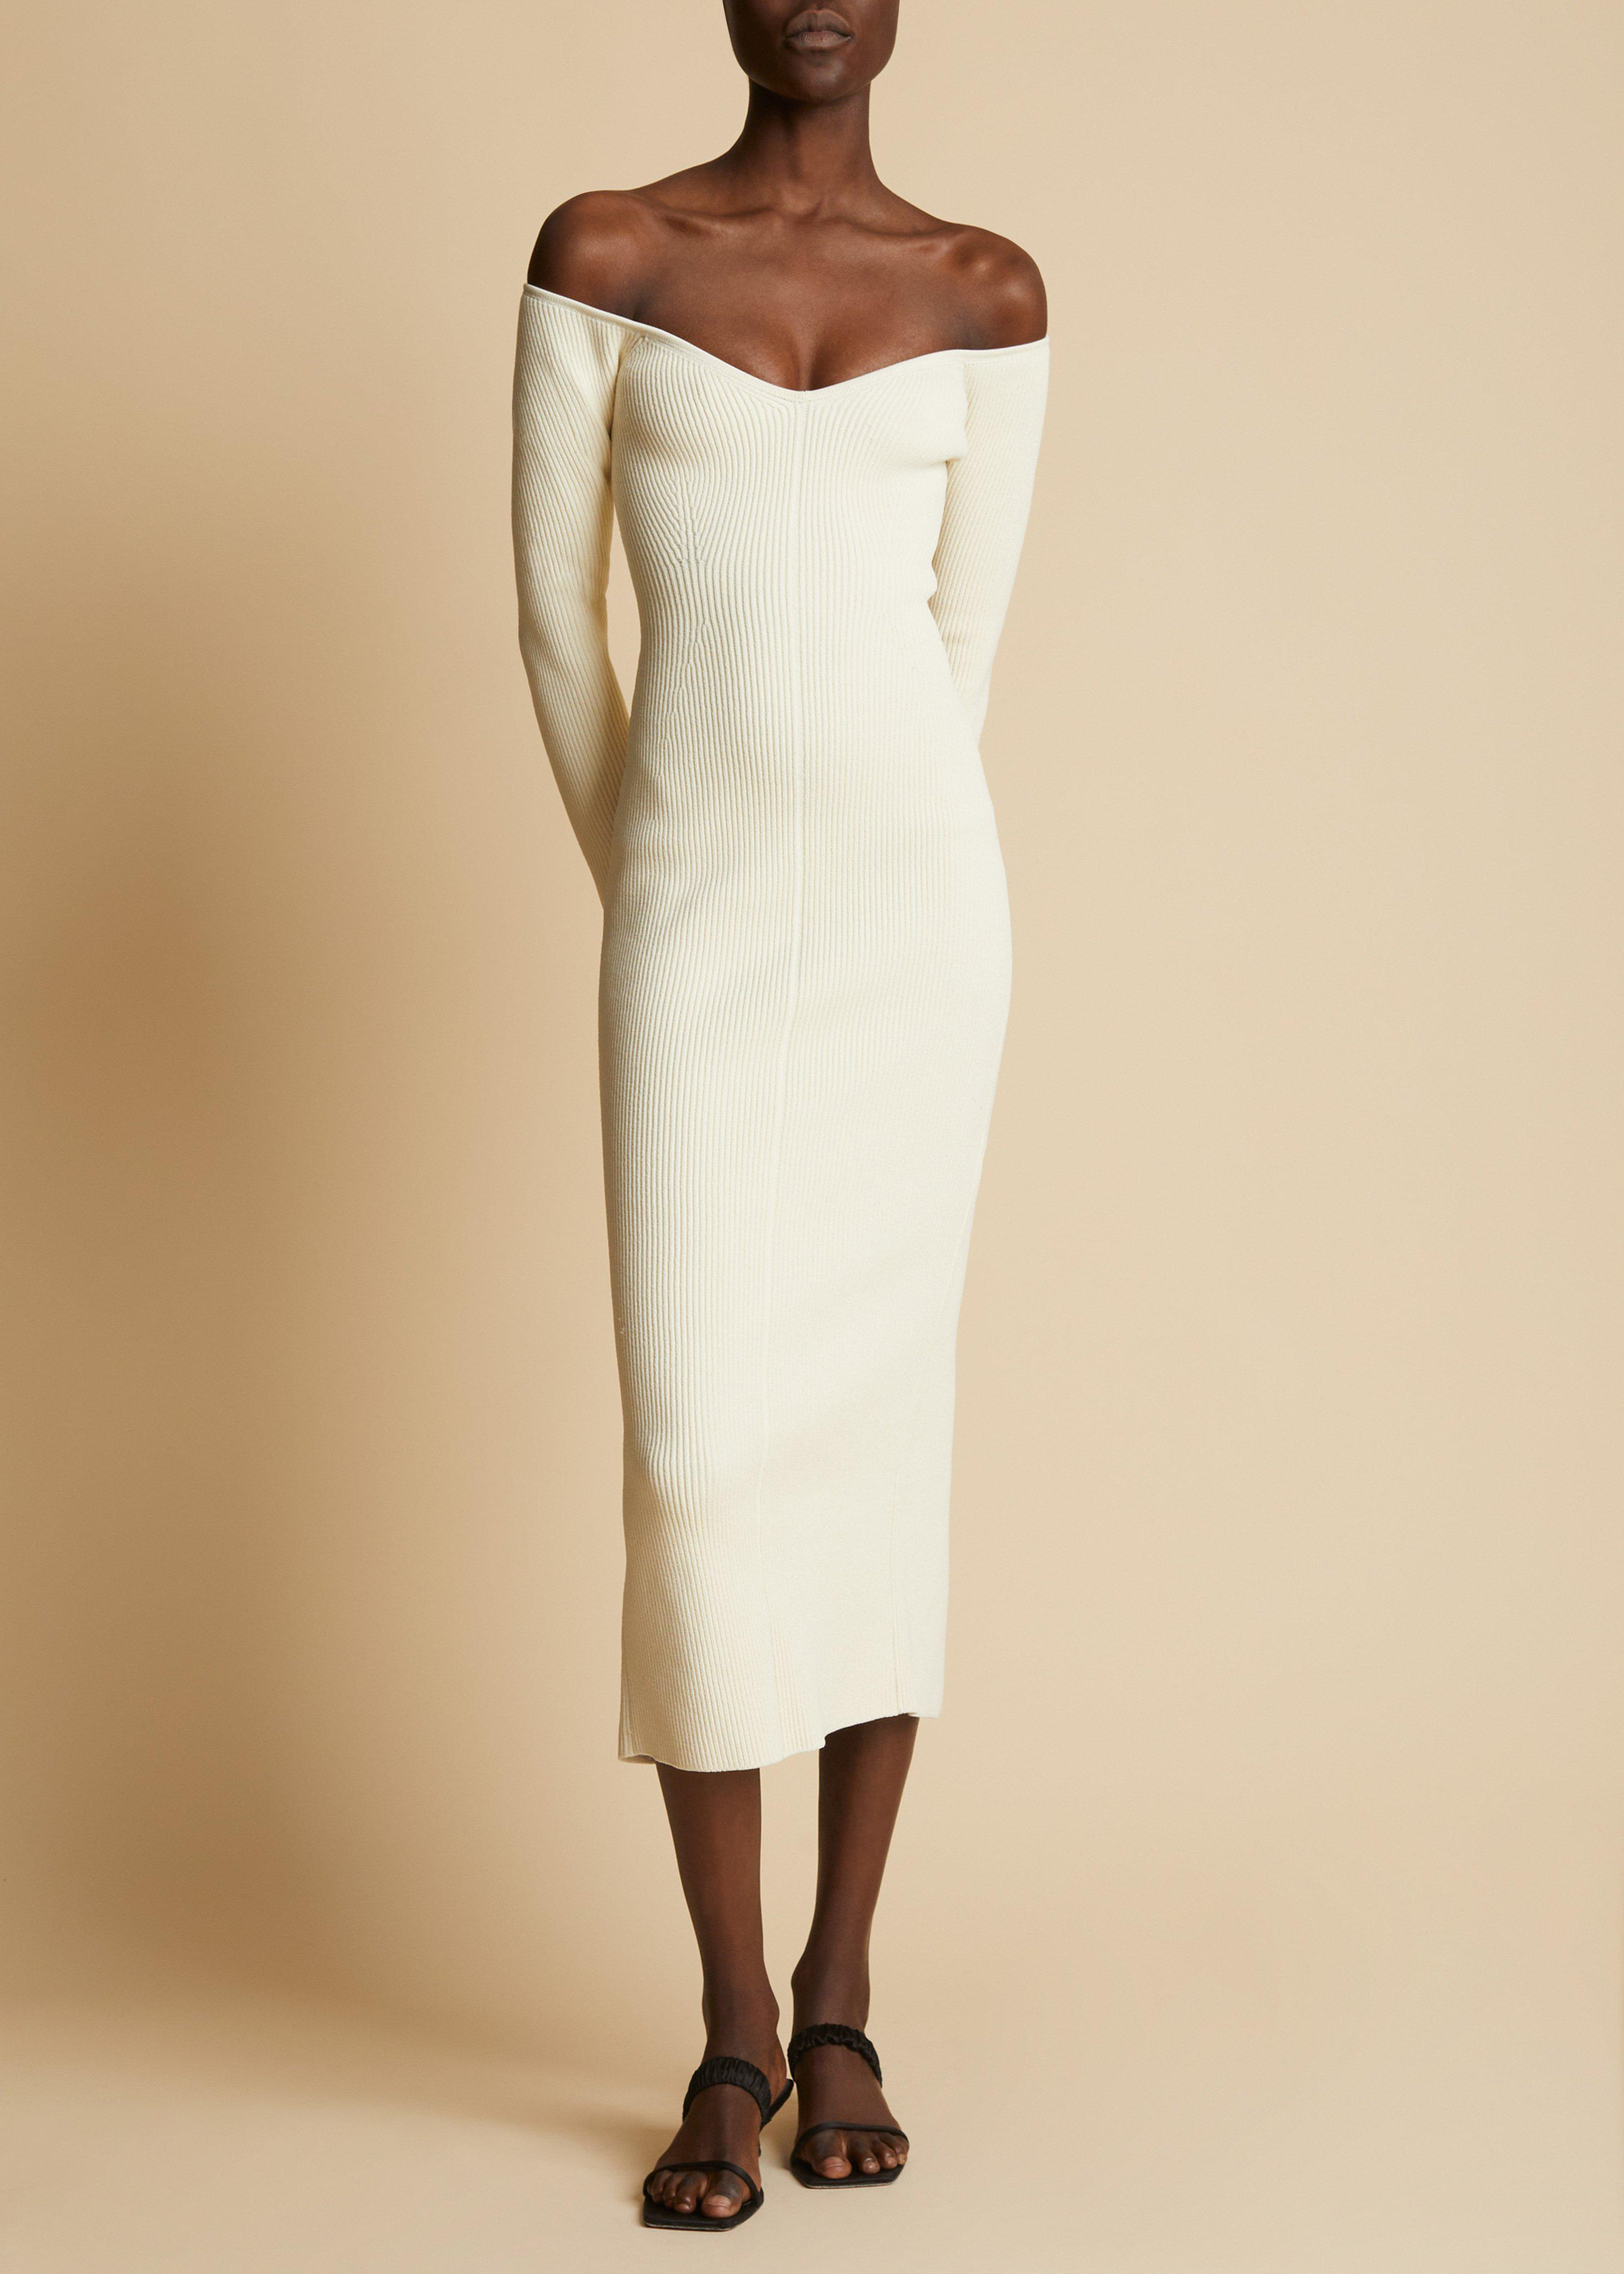 The Pia Dress in Ivory